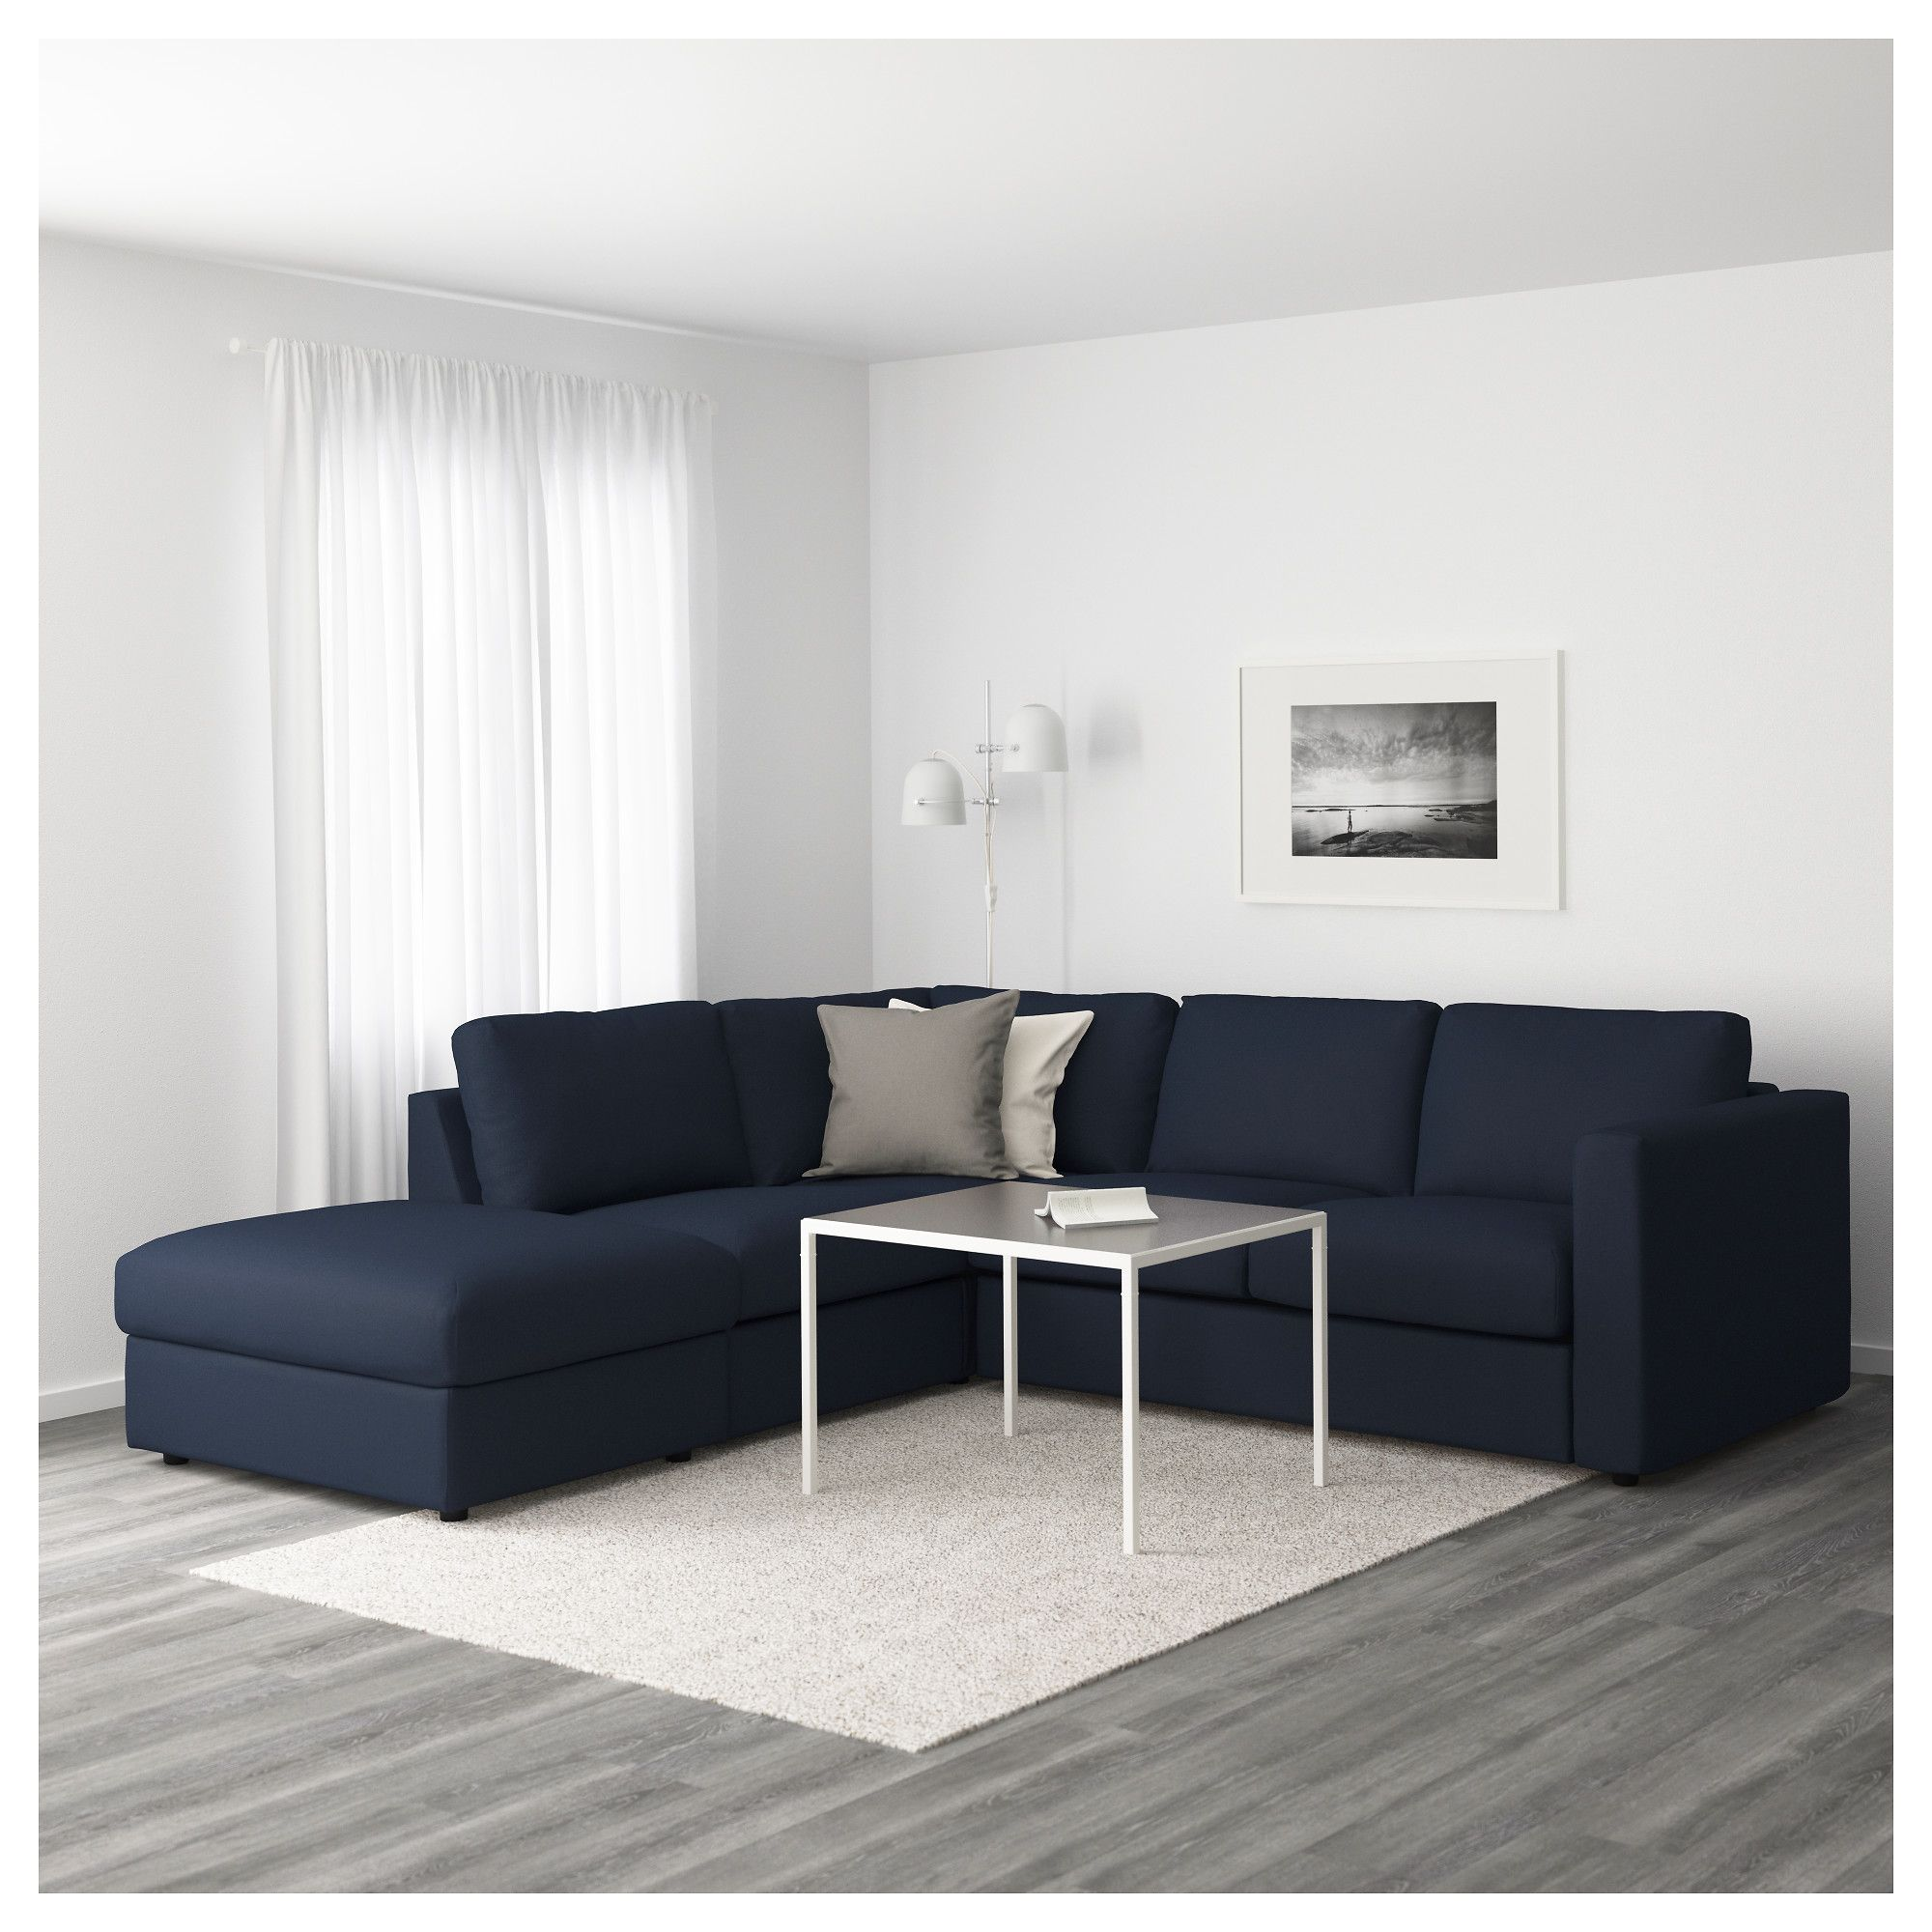 Terrific Furniture And Home Furnishings In 2019 Corner Sofa Ikea Unemploymentrelief Wooden Chair Designs For Living Room Unemploymentrelieforg